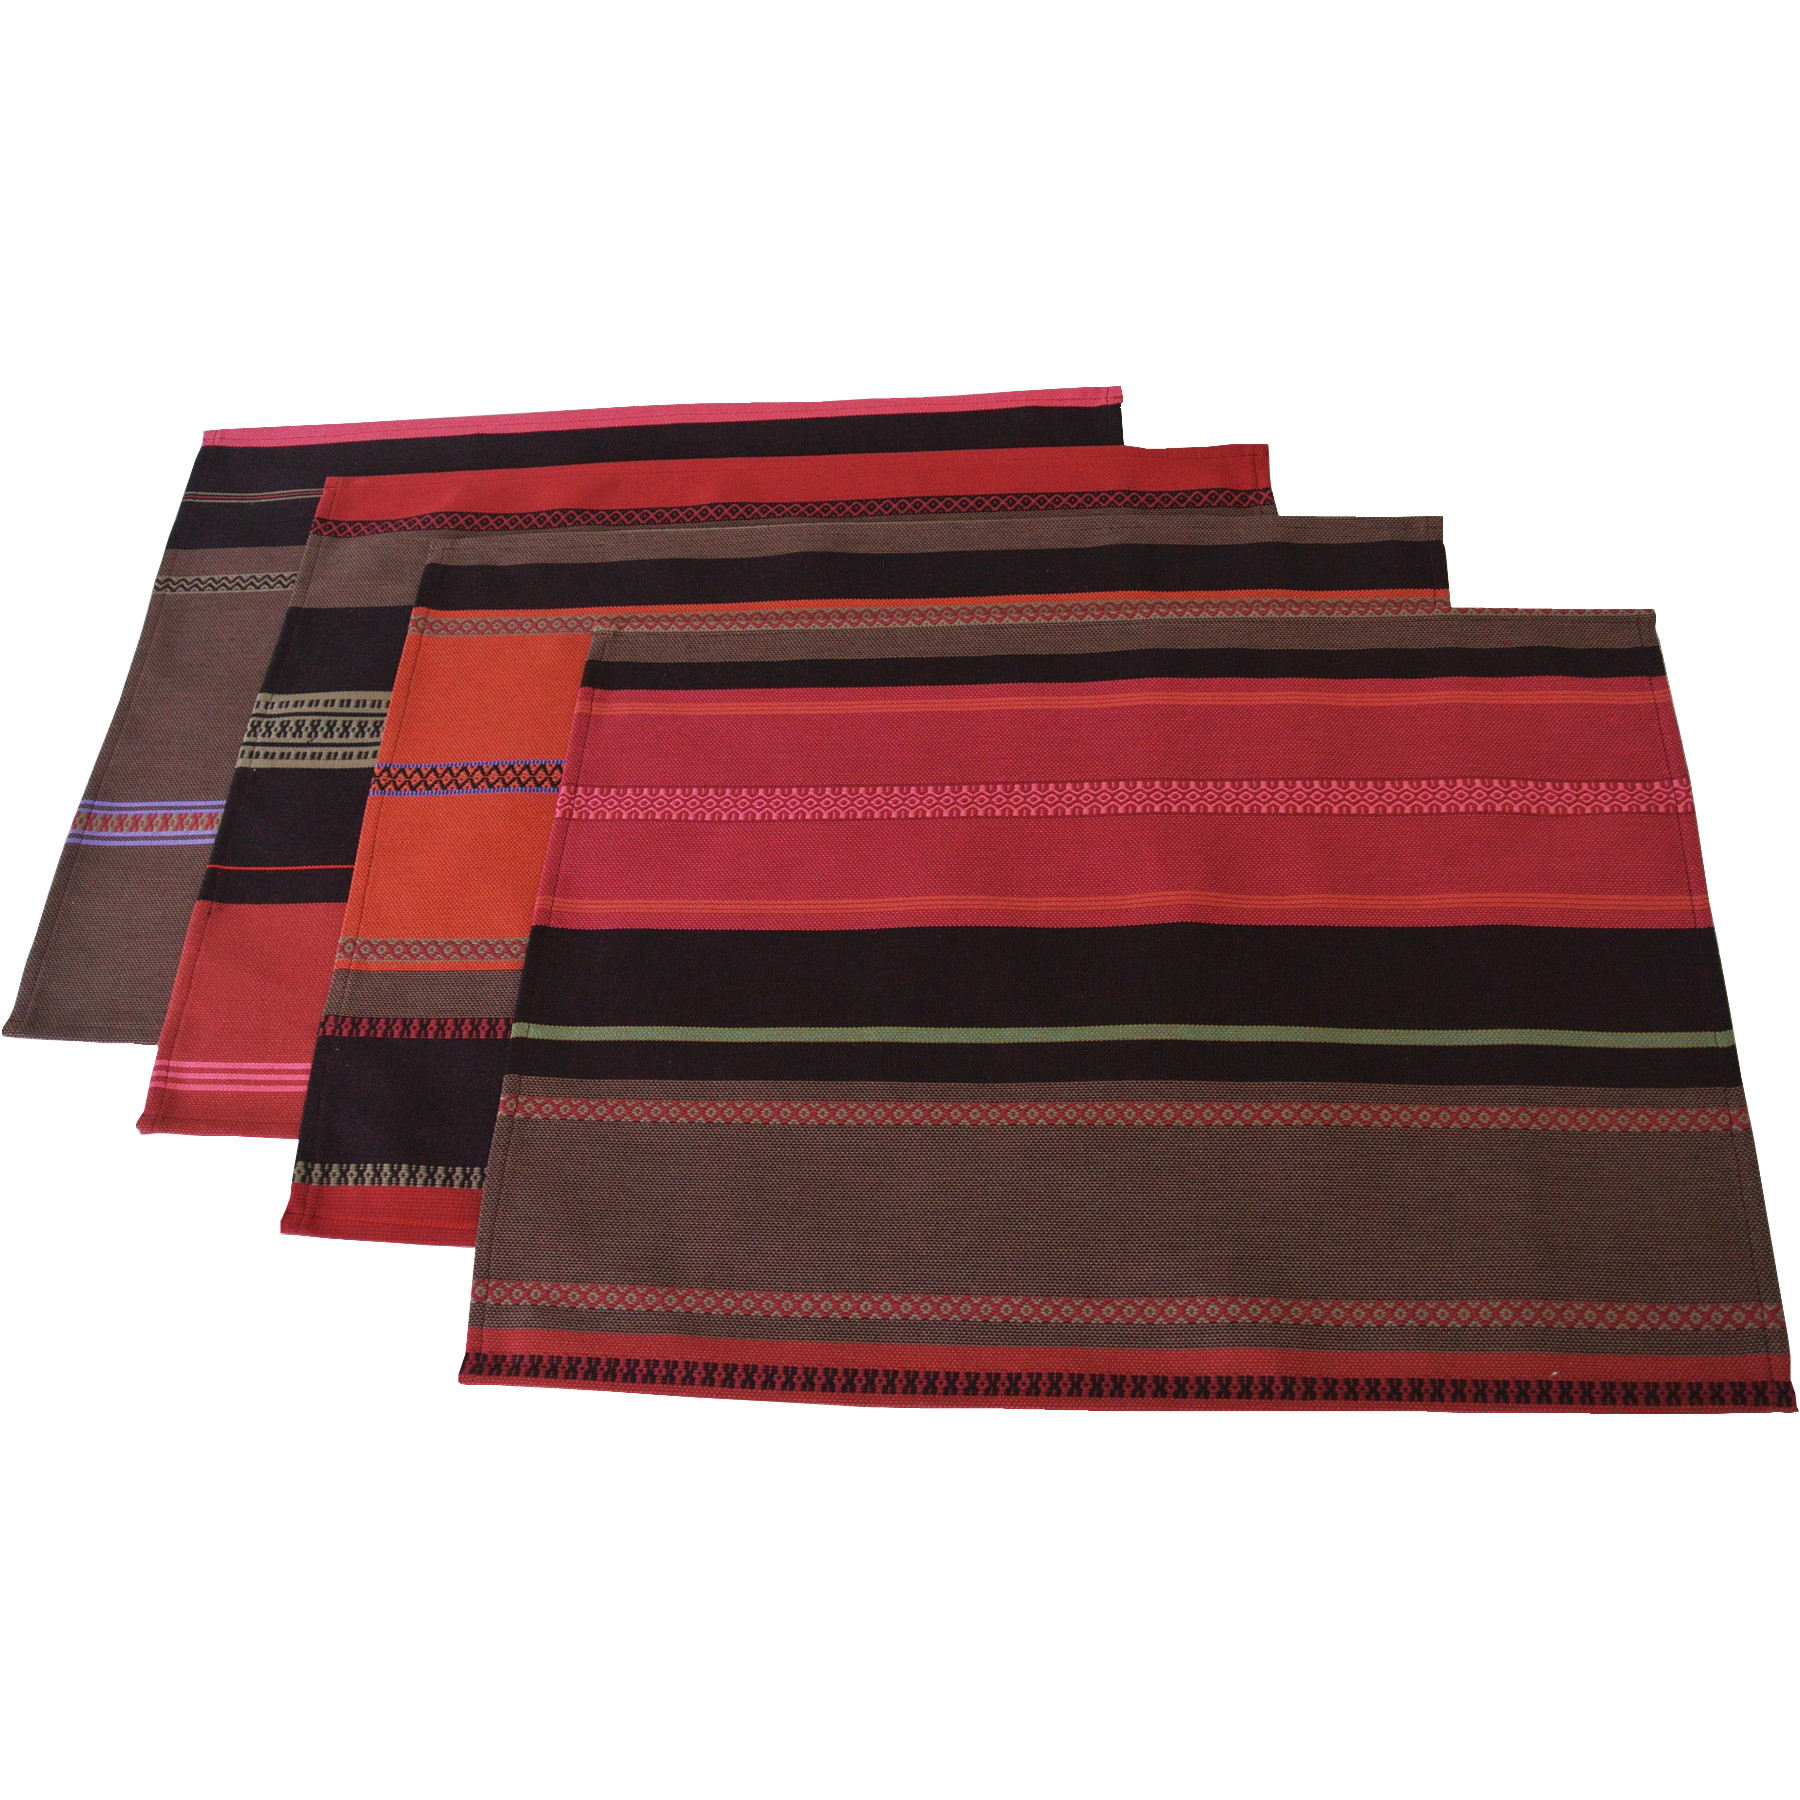 Placemats TSAR (sold by 4)